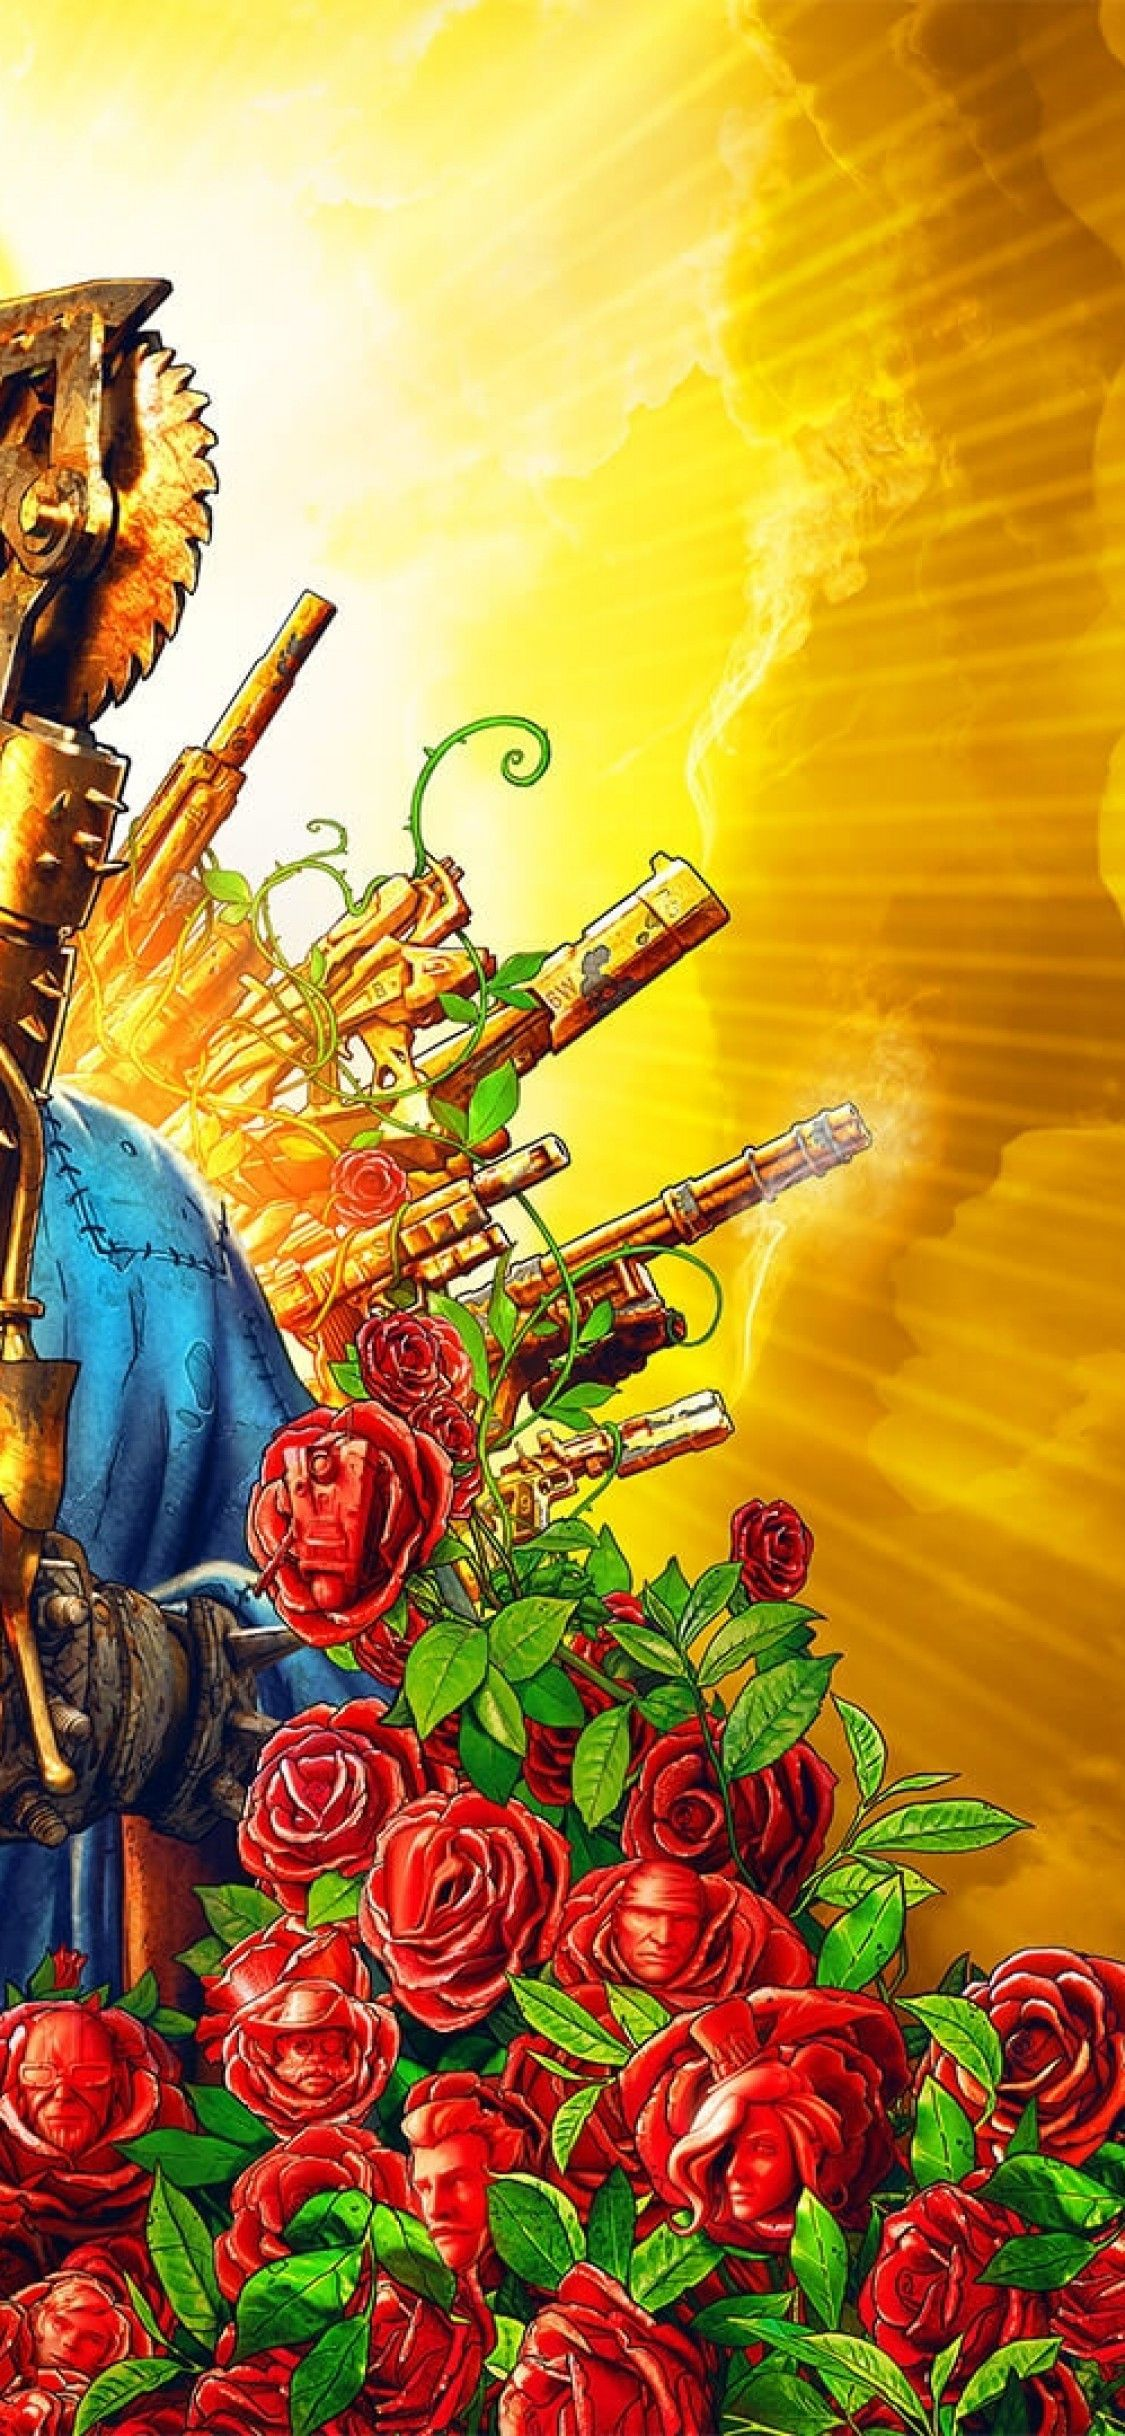 Borderlands Wallpaper Iphone Awesome Download 1125 215 2436 Borderlands 3 Artwork Flowers Ma Borderlands Wallpaper Iphone Borderlands Wallpaper Wallpaper